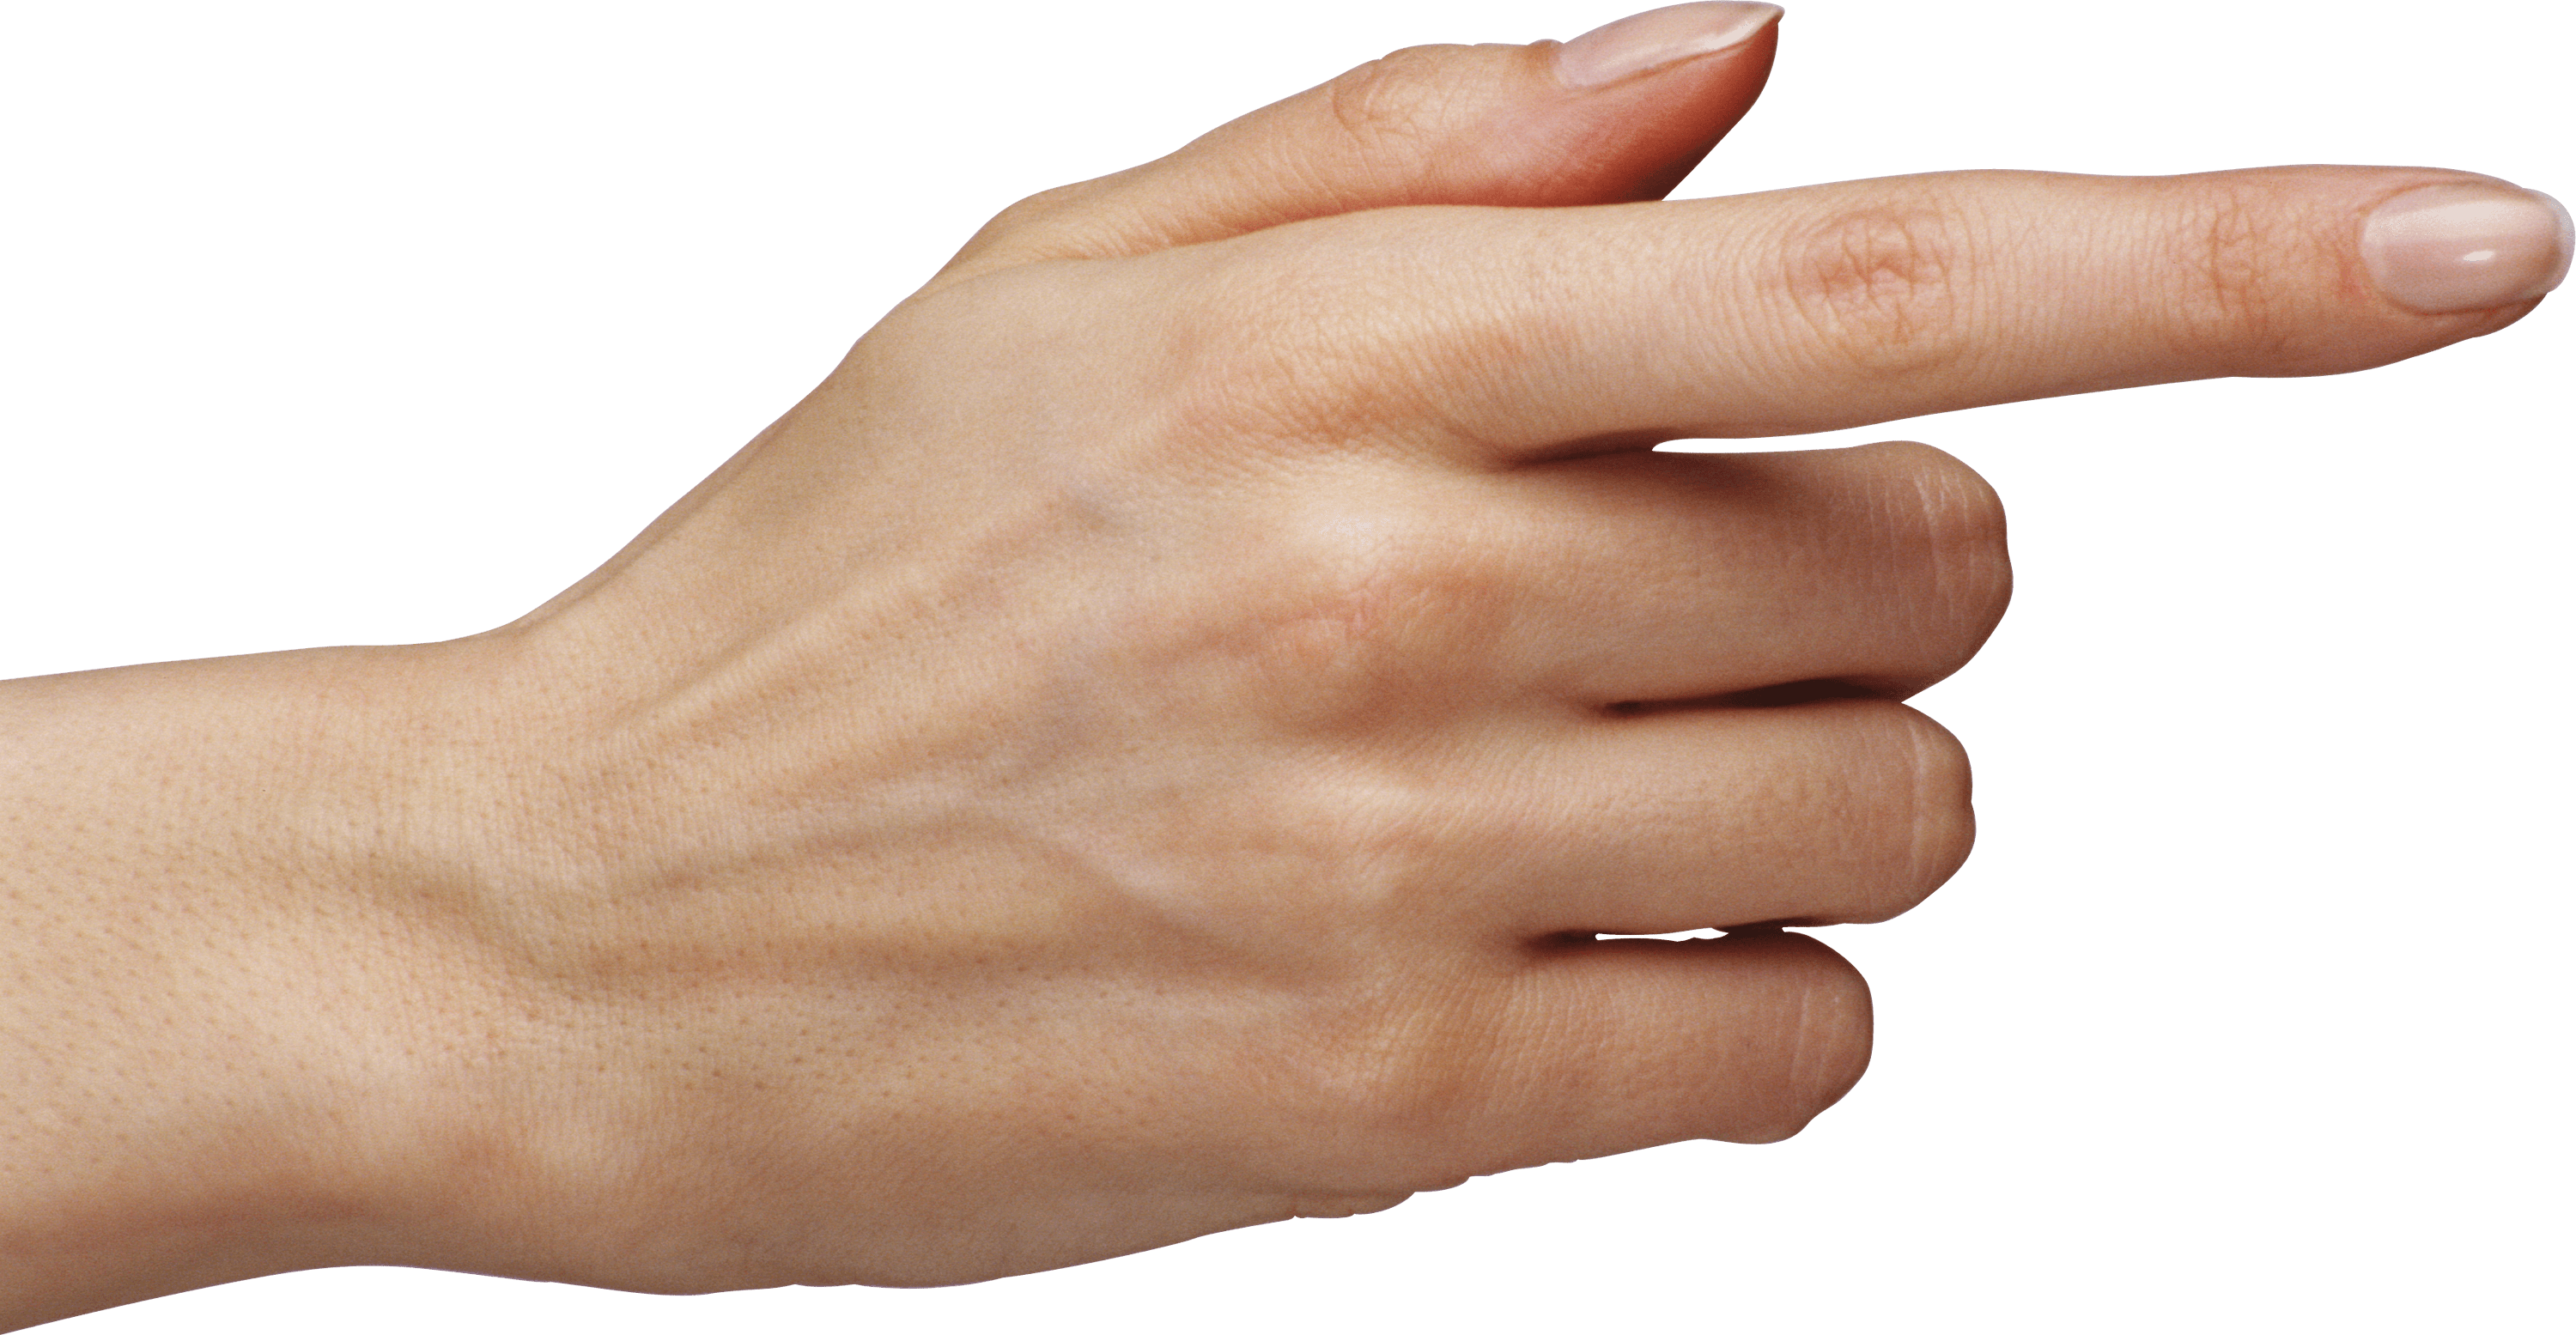 Hand, Finger Free Download Transparent